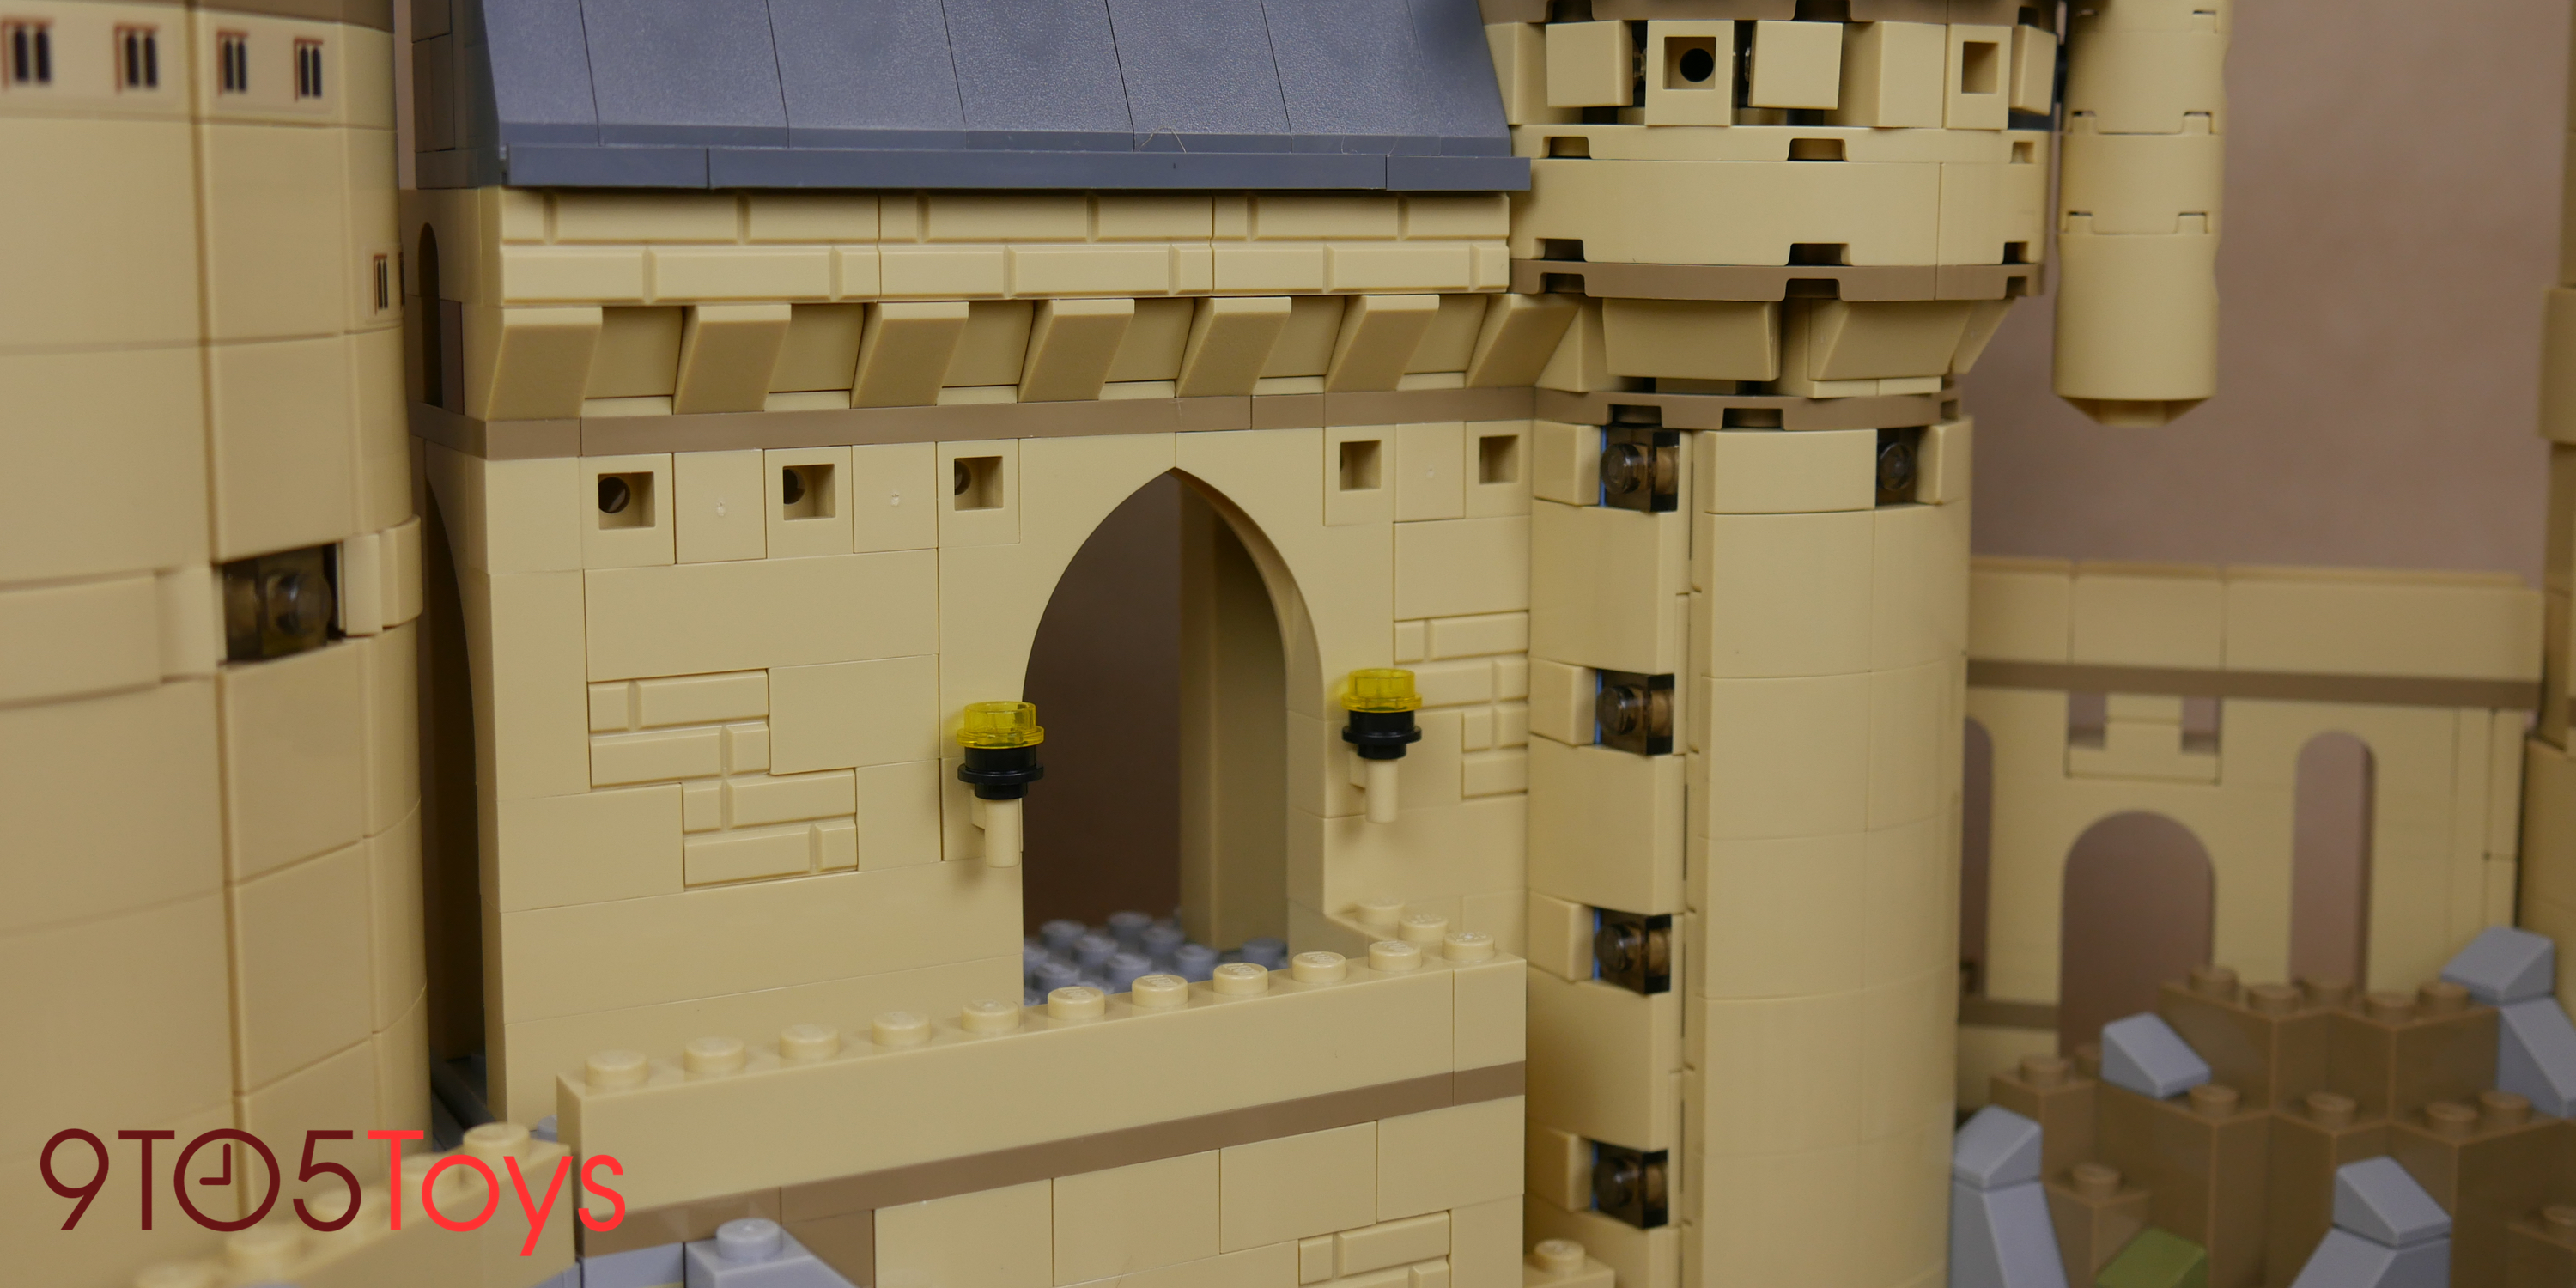 Lego Hogwarts Castle Review The 2nd Largest Kit In History Reigns